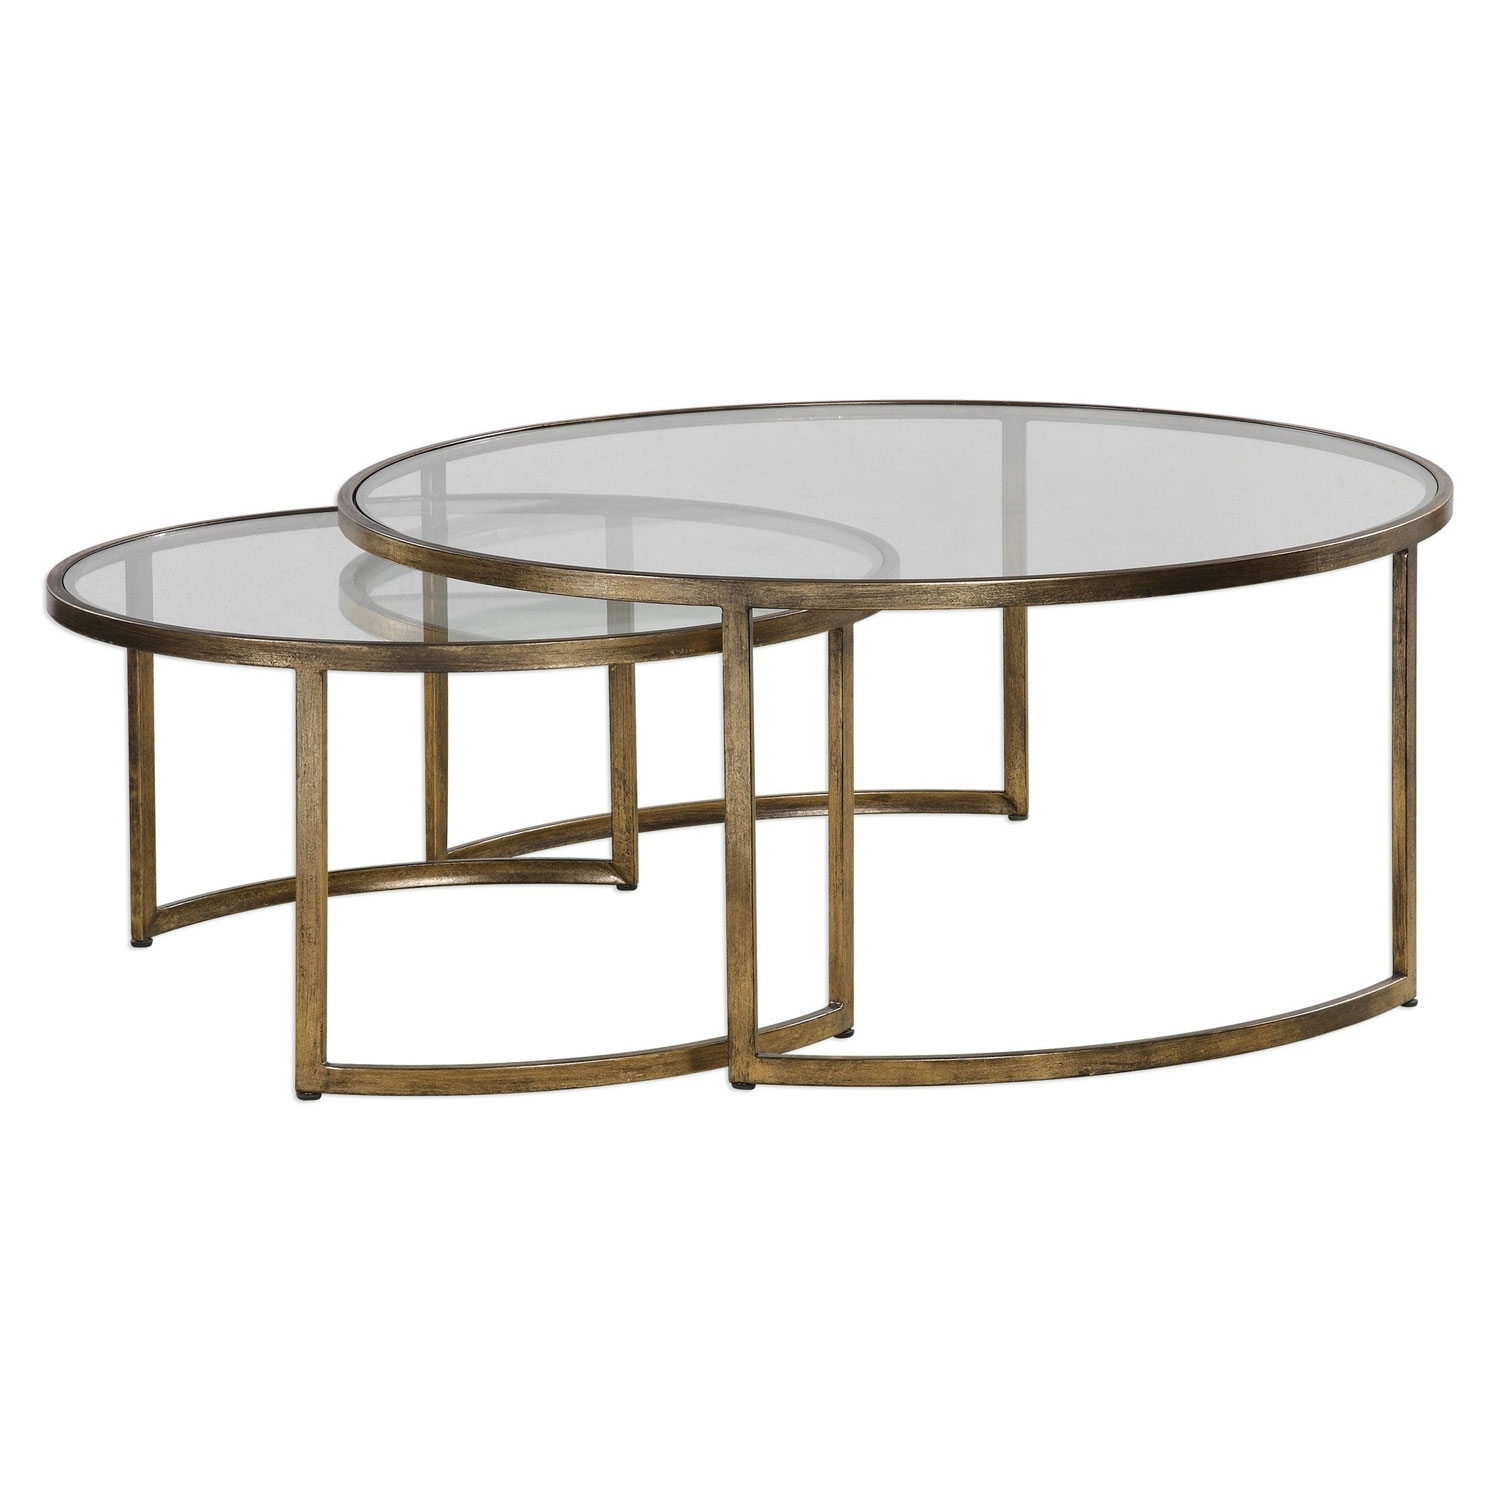 Uttermost Rhea Nested Coffee Tables, Set Of Two 24747 | Bellacor For Set Of Nesting Coffee Tables (View 30 of 30)